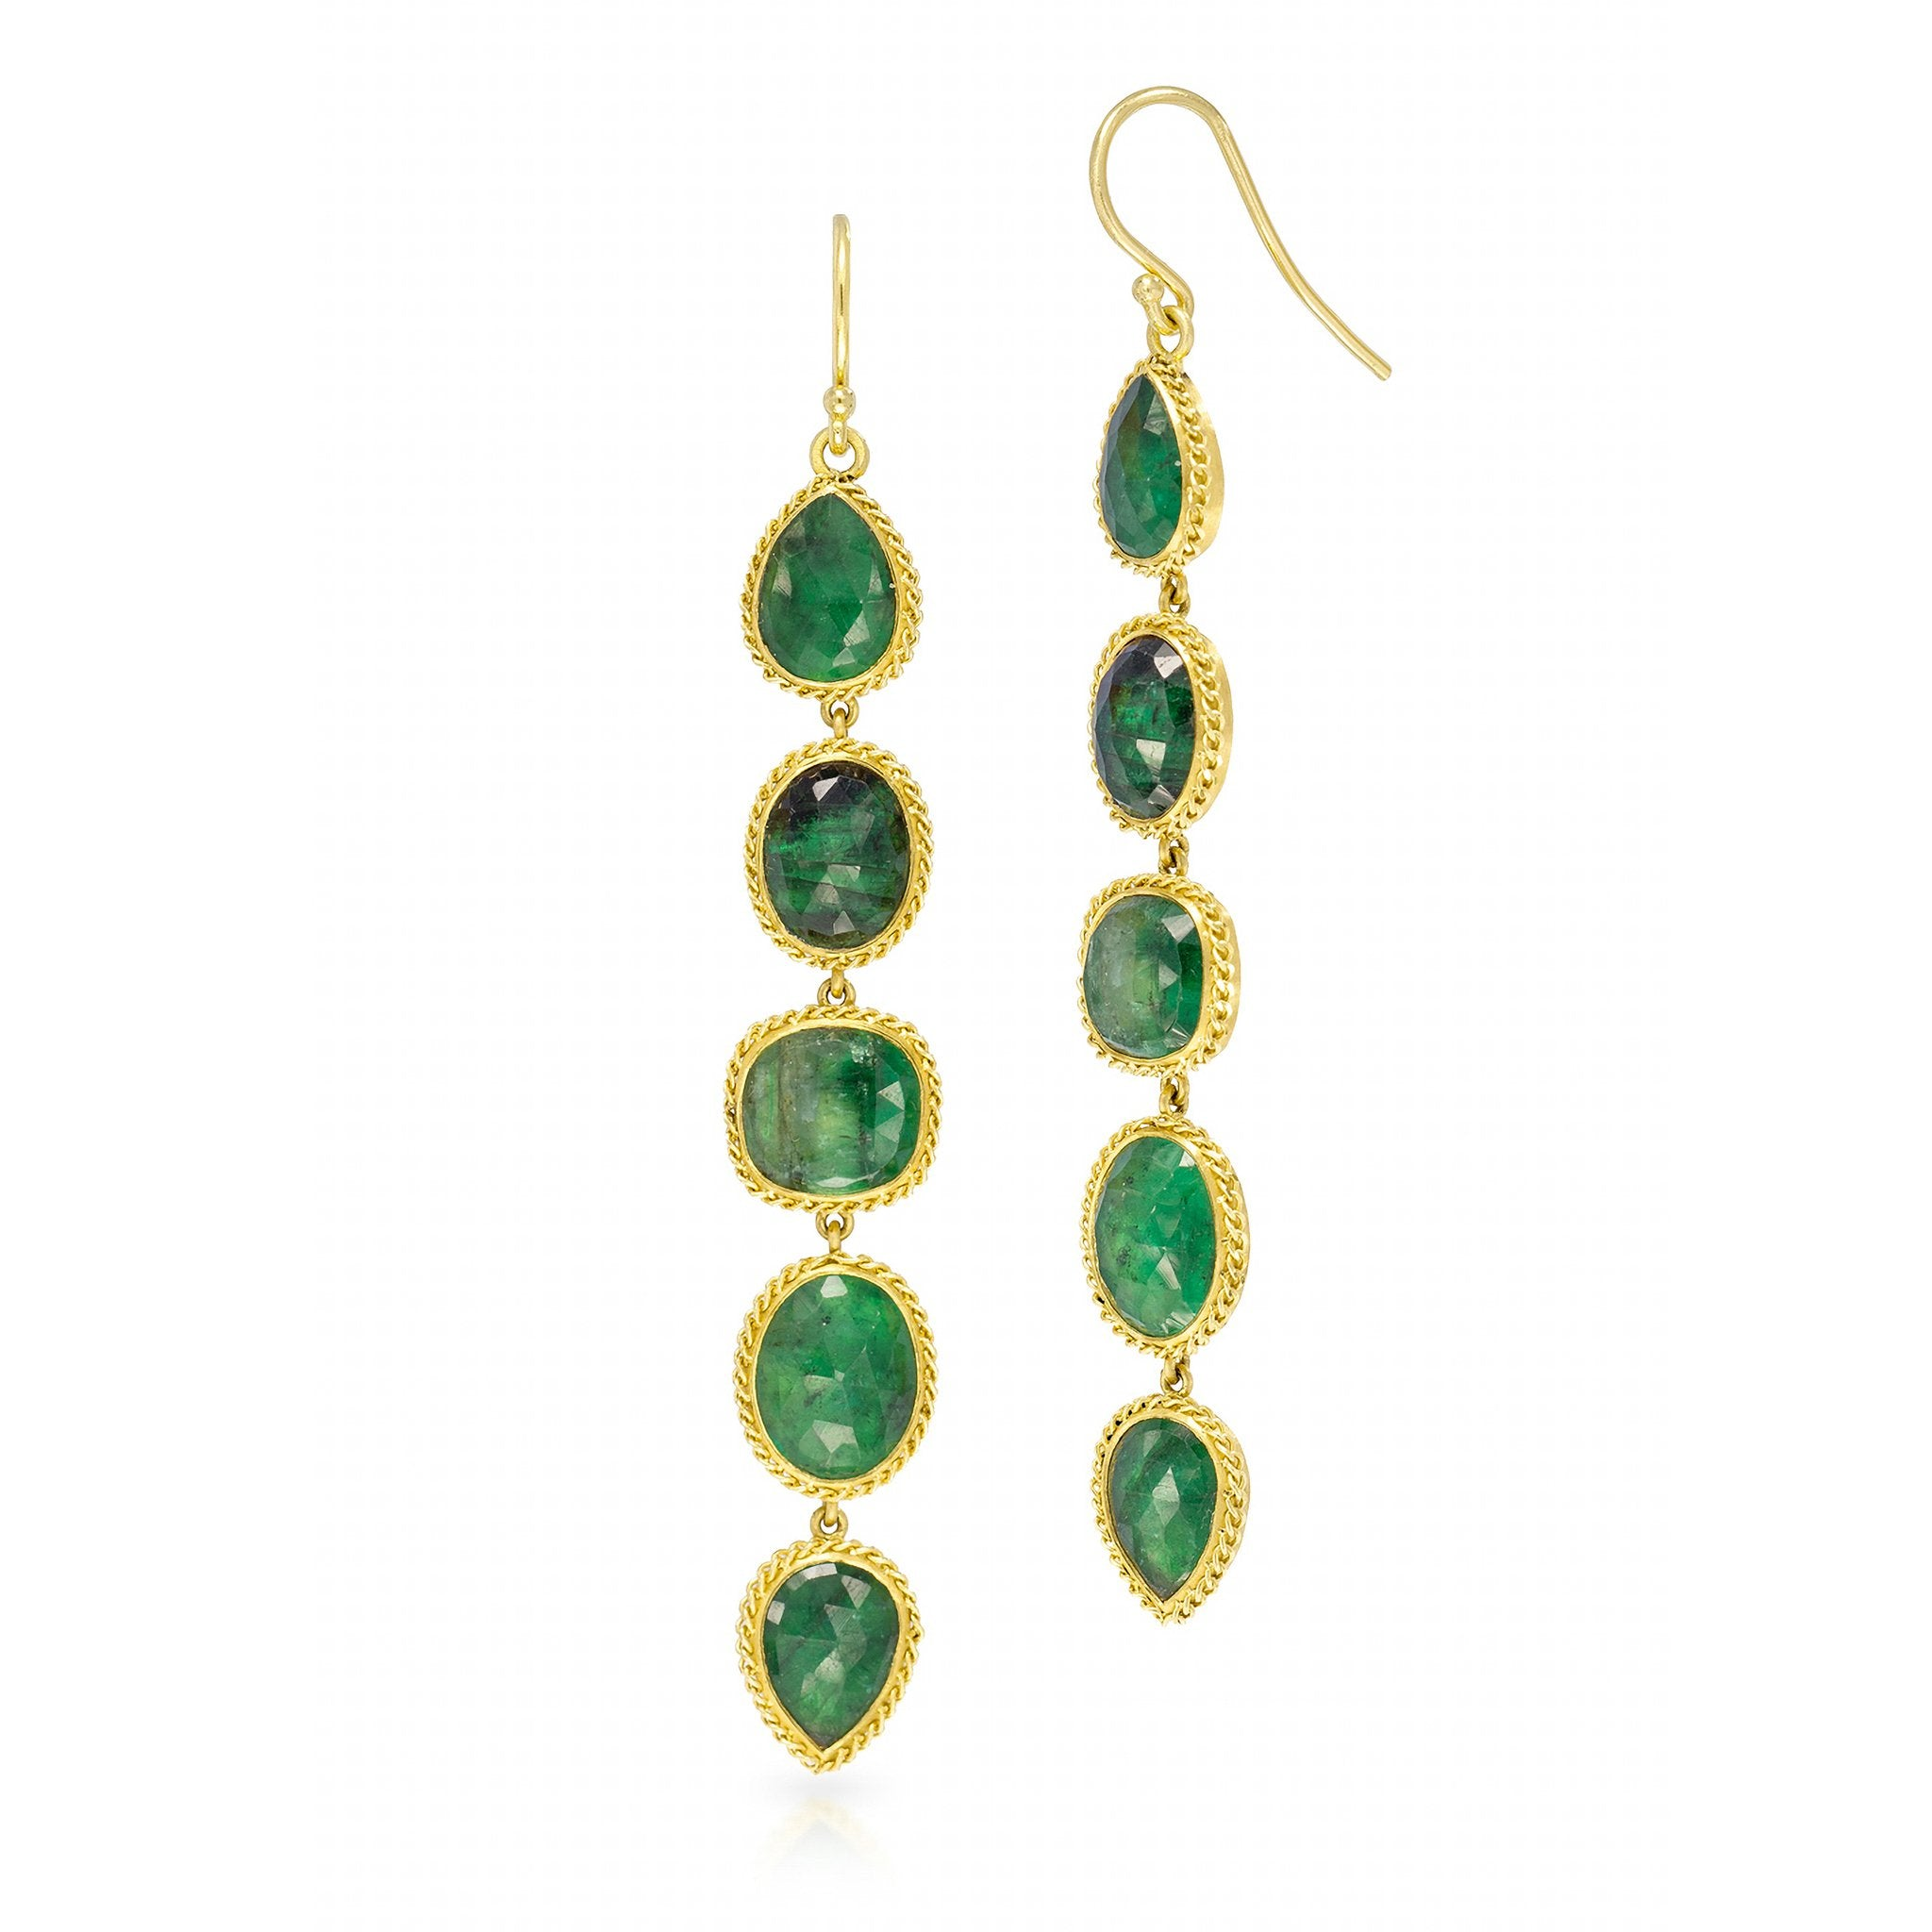 Amali-Emerald Pebble Earrings